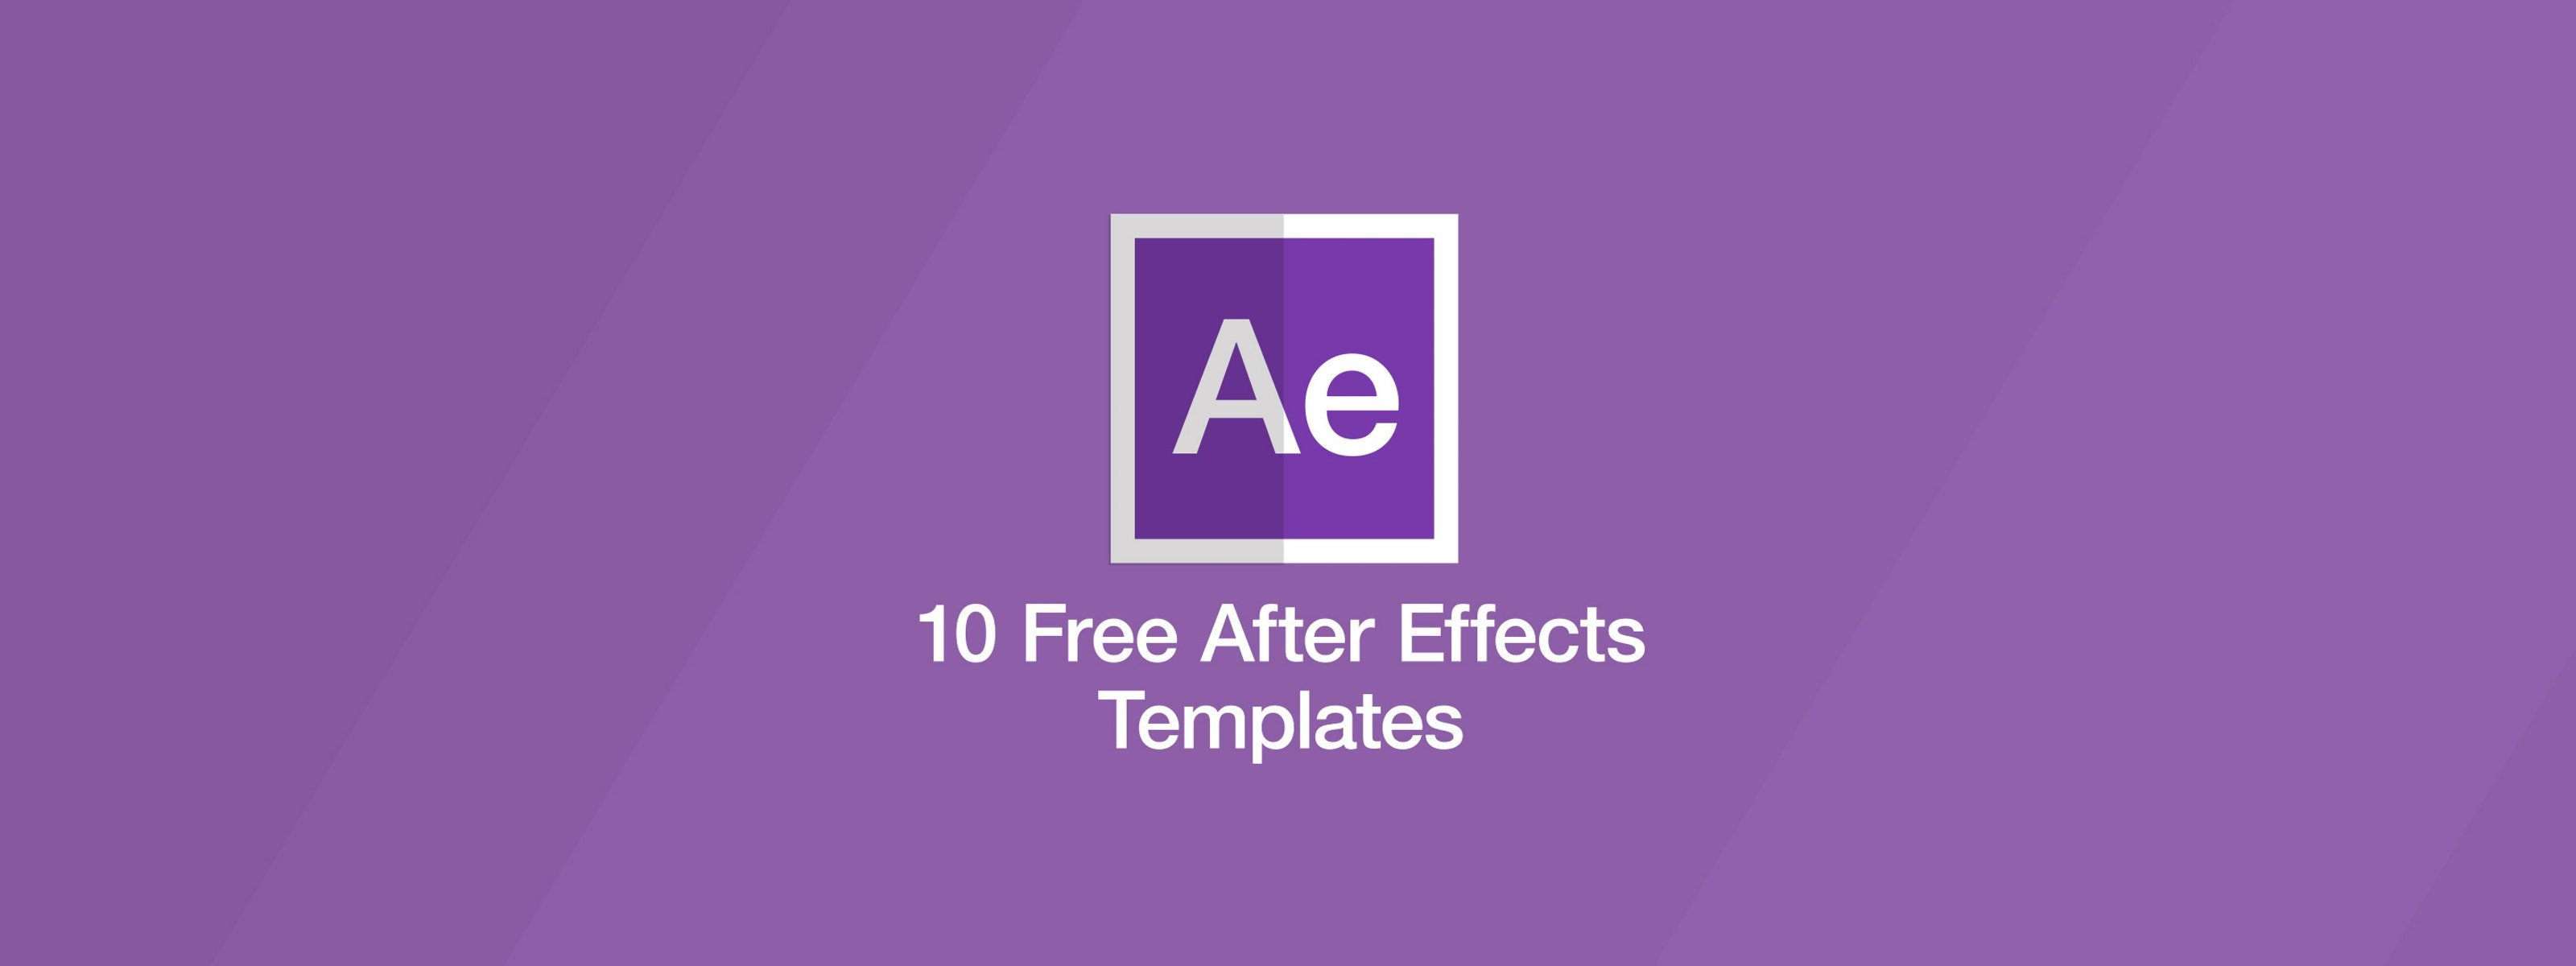 After Effects Templates Free 10 Free after Effects Templates